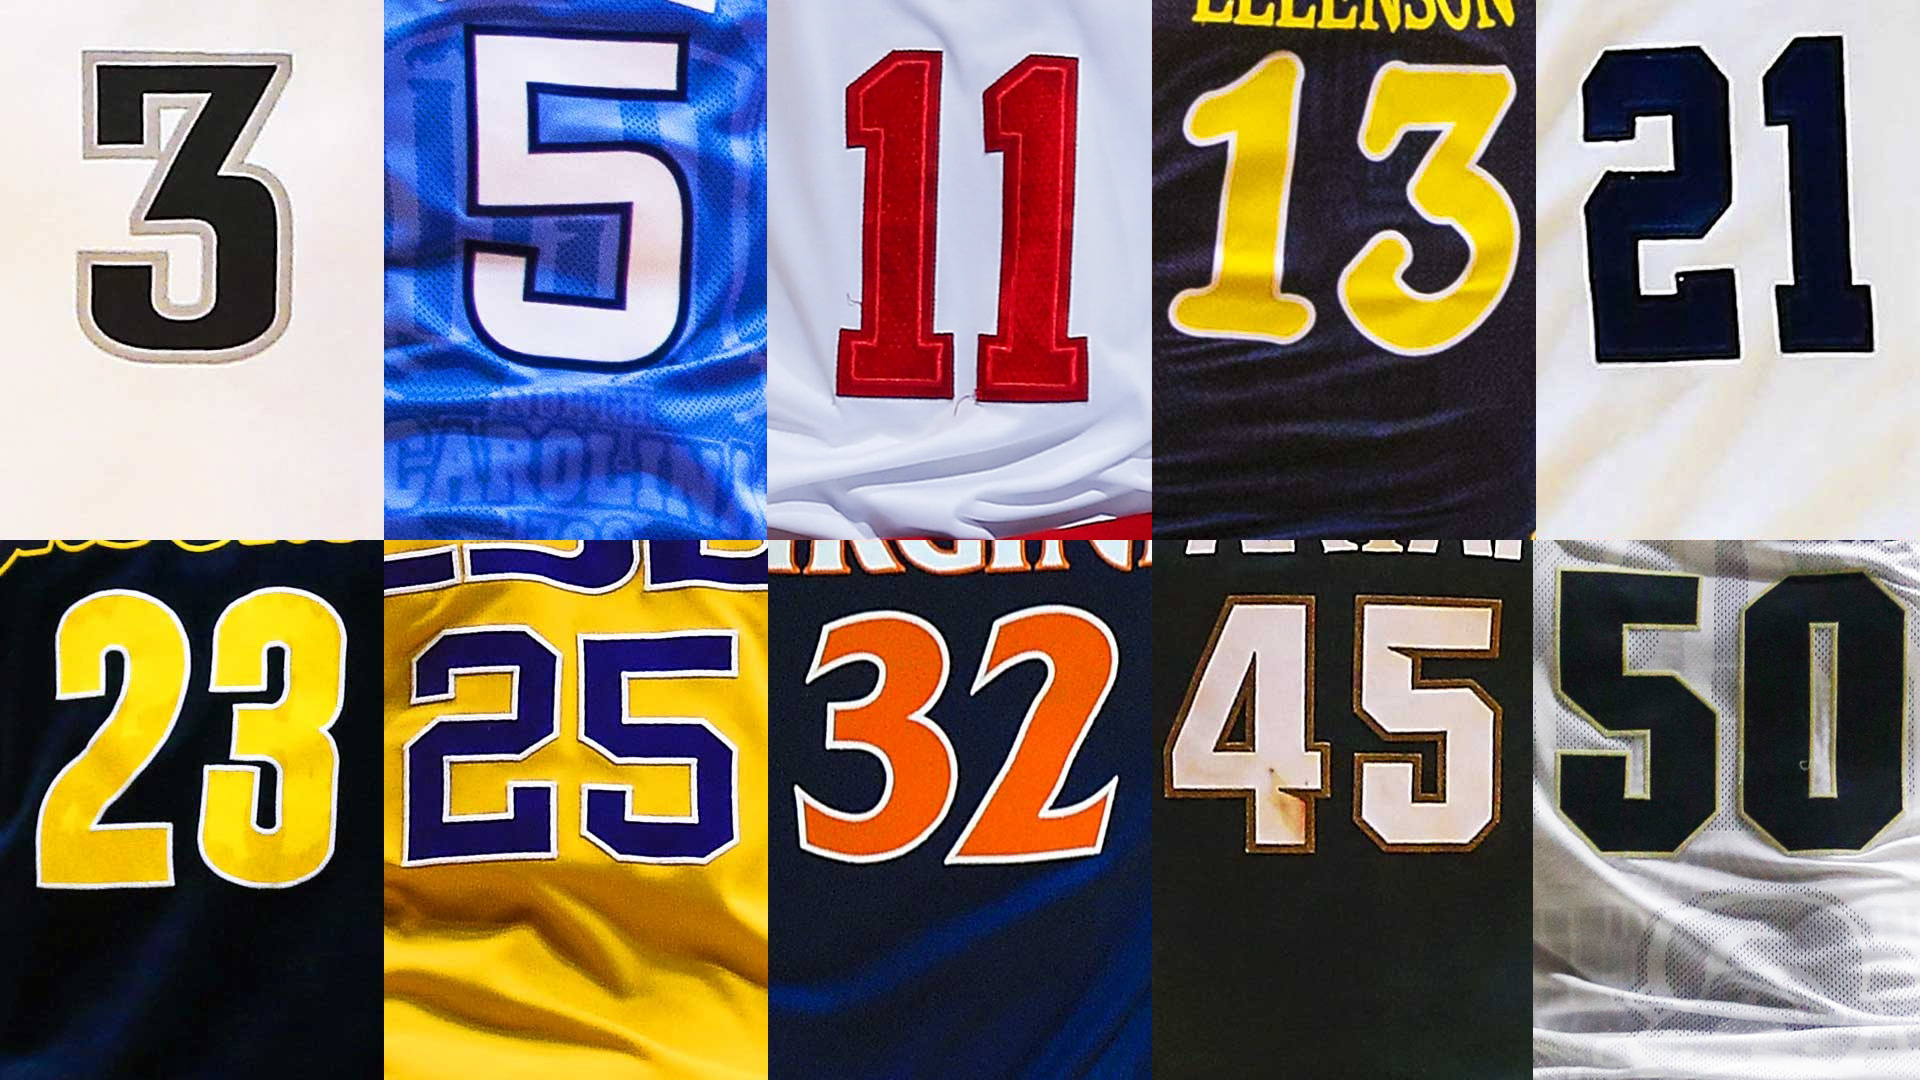 numbers on jersey